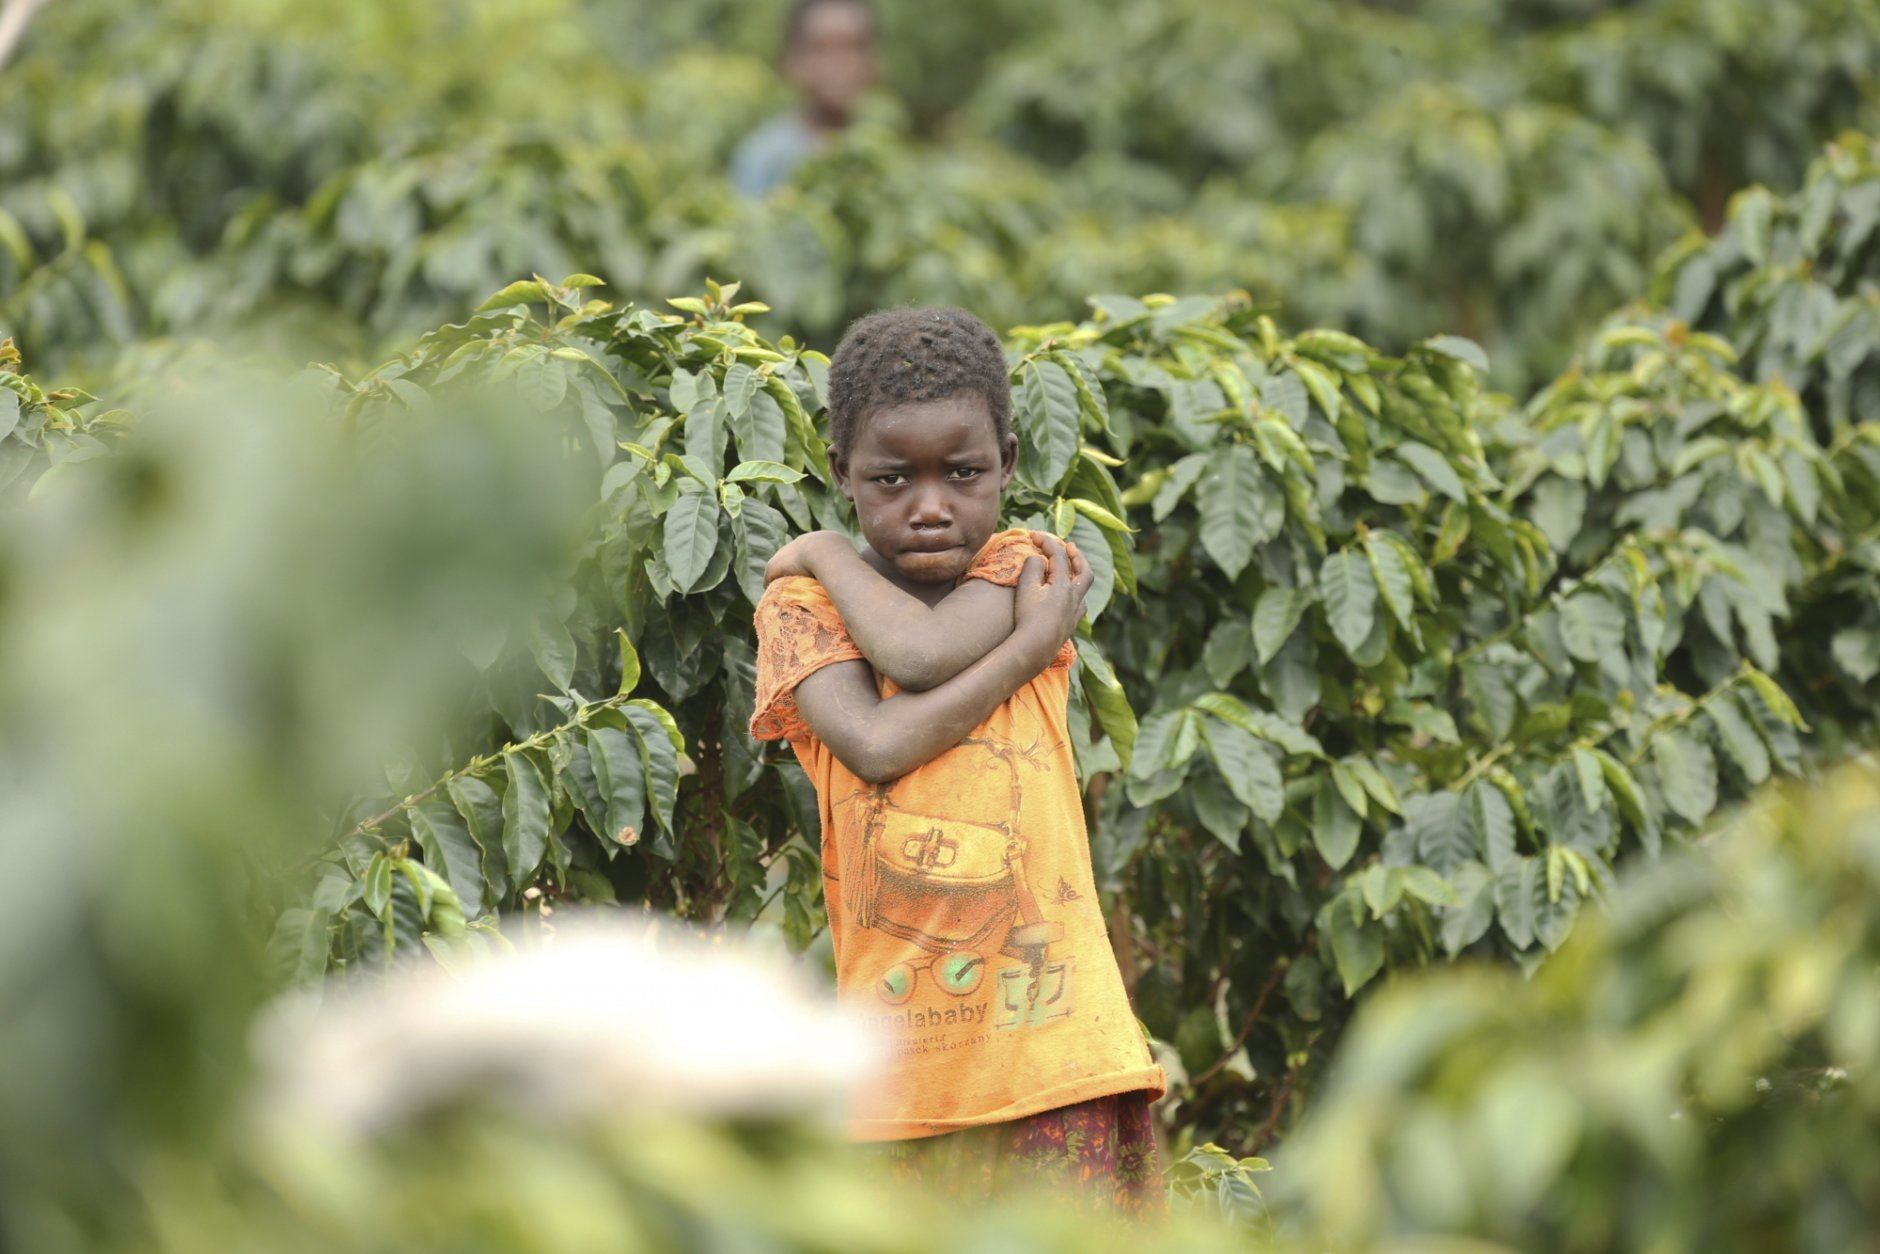 A child stands in a coffee plantation in Mount Gorongosa, Mozambique in this Sunday, Aug. 3, 2019 photo. On the slopes of Mount Gorongosa, more than 100 farmers are producing coffee that earns them incomes while at the same time restores the rapidly eroding rainforest. With peace on the mountaintop there are plans to dramatically scale up coffee production, as part of Gorongosa National Park's innovative plan to boost the incomes of people living around the park as well as revitalizing the environment. (AP Photo/Tsvangirayi Mukwazhi)